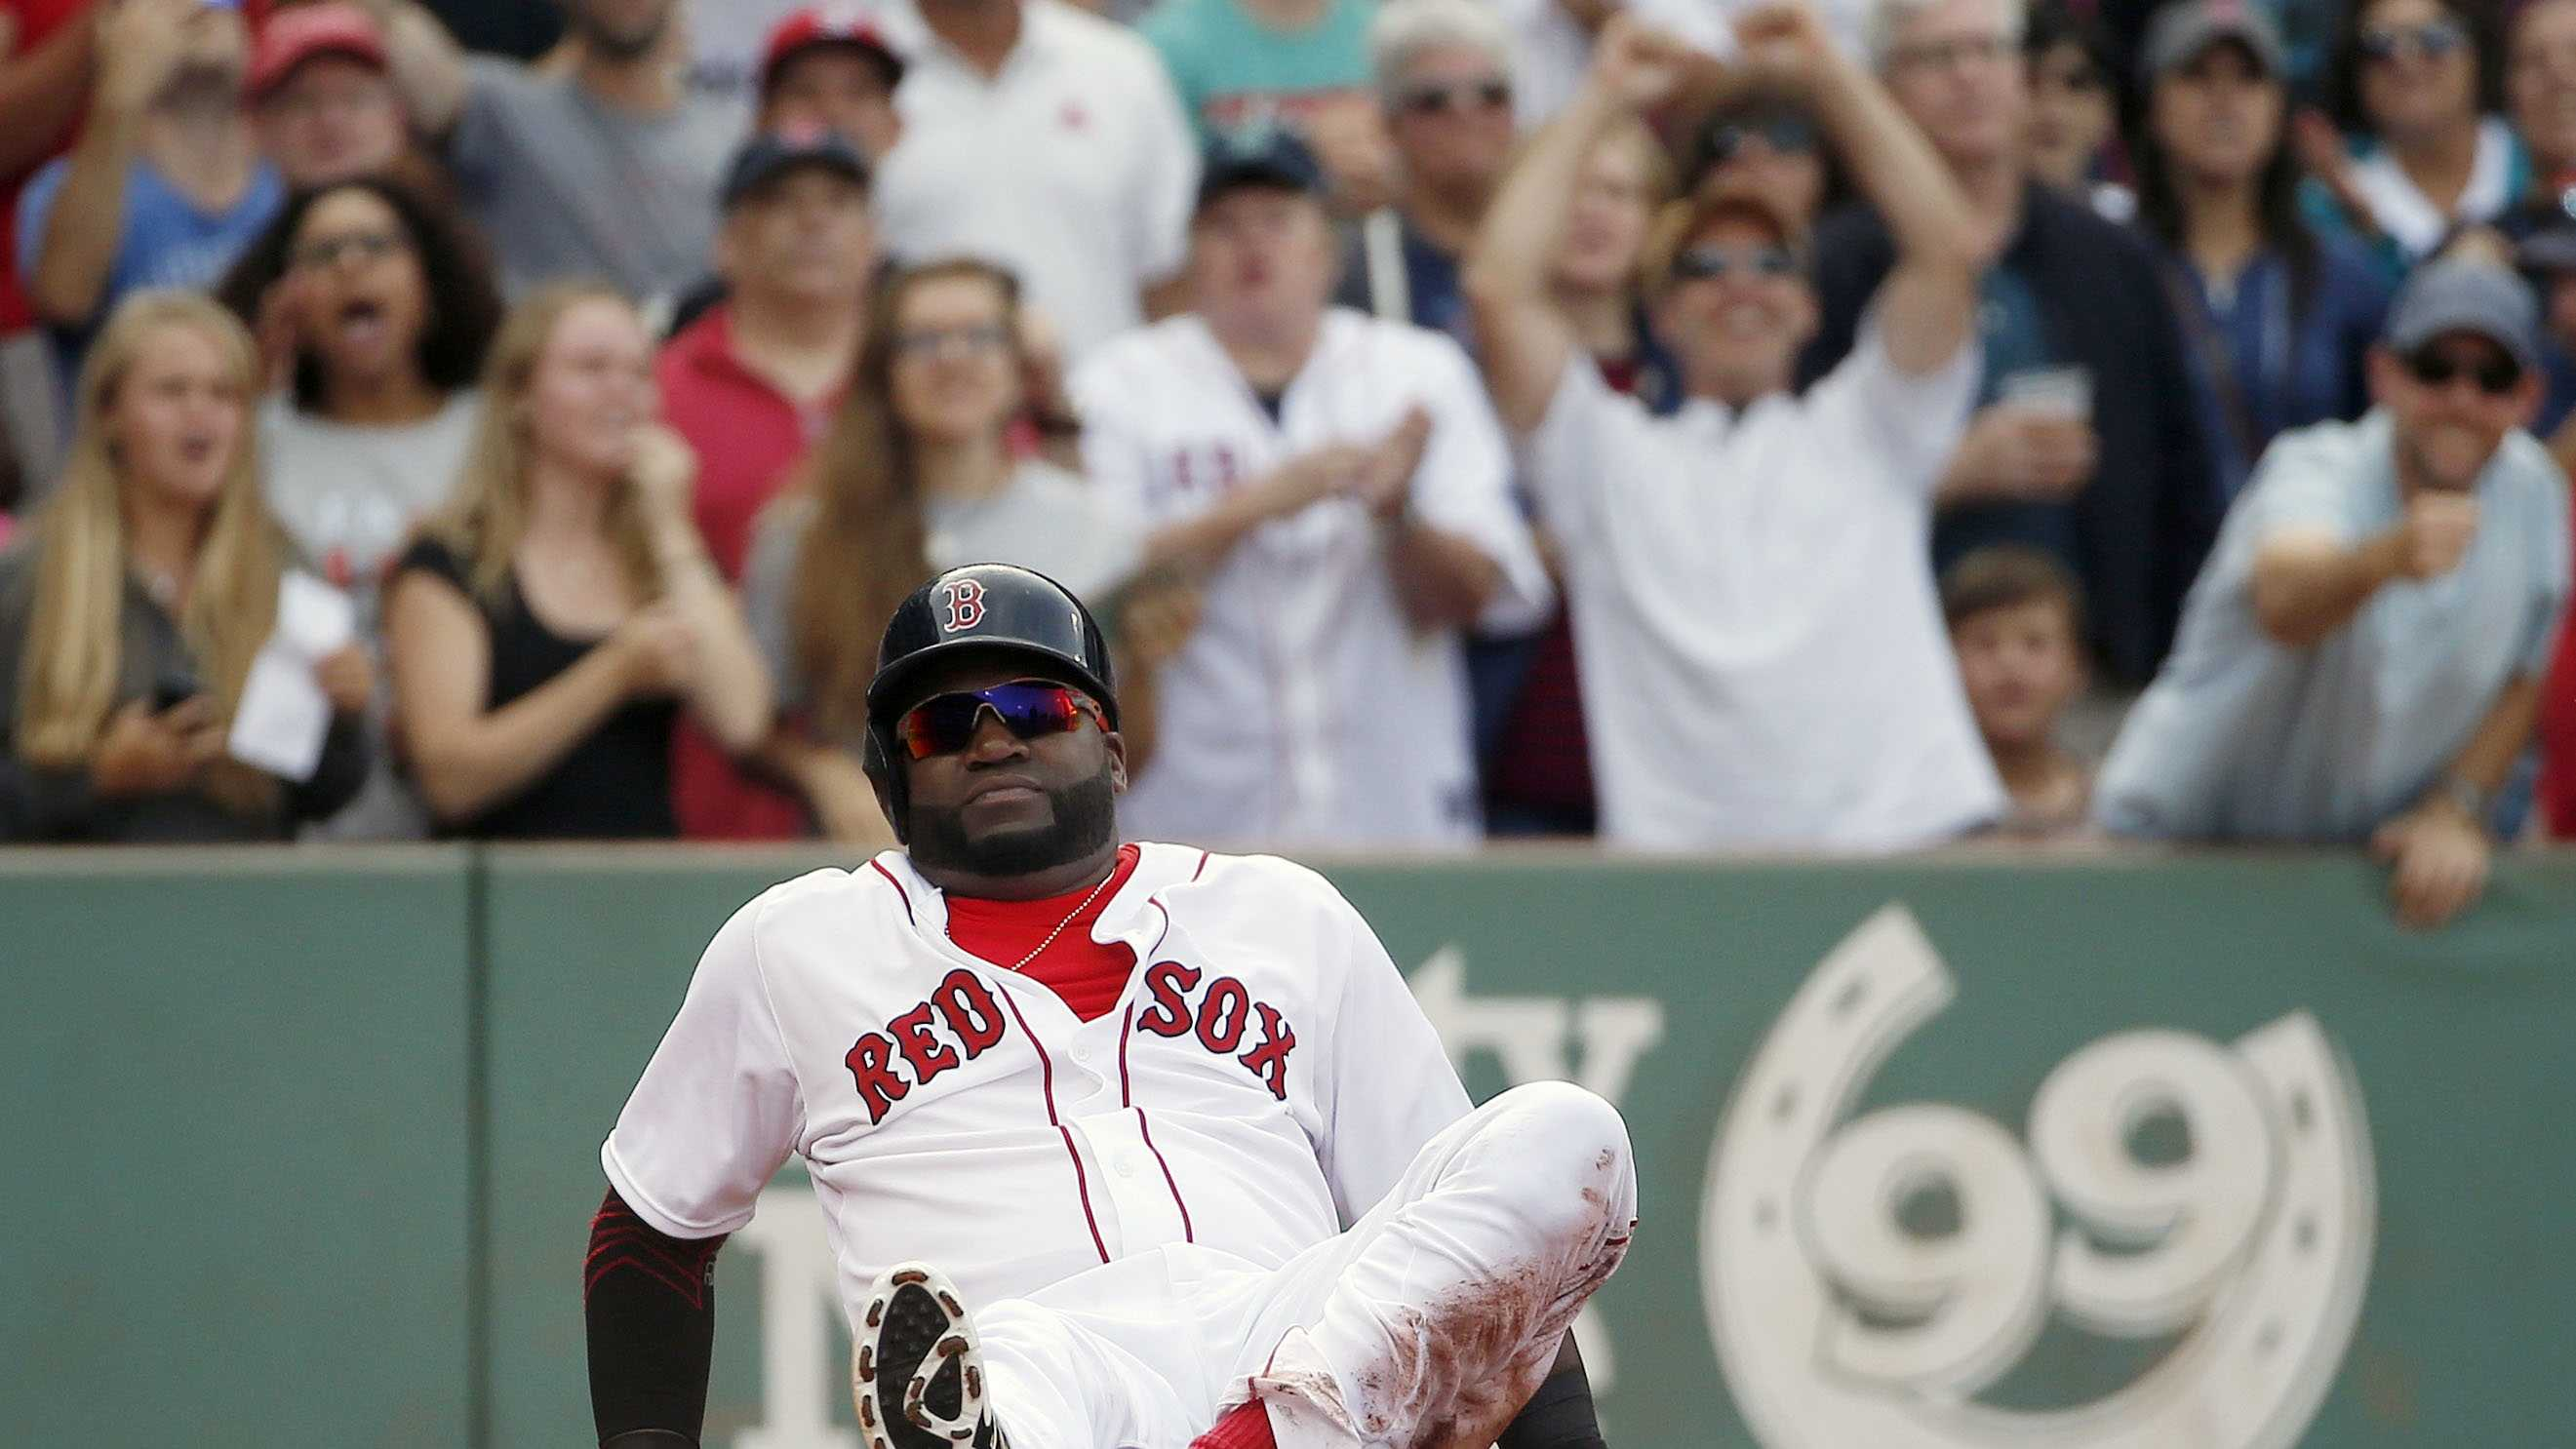 Boston Red Sox's David Ortiz sits on the ground after being tagged out at home plate trying to score on a single by Hanley Ramirez during the second inning of a baseball game against the Detroit Tigers in Boston, Saturday, July 25, 2015.